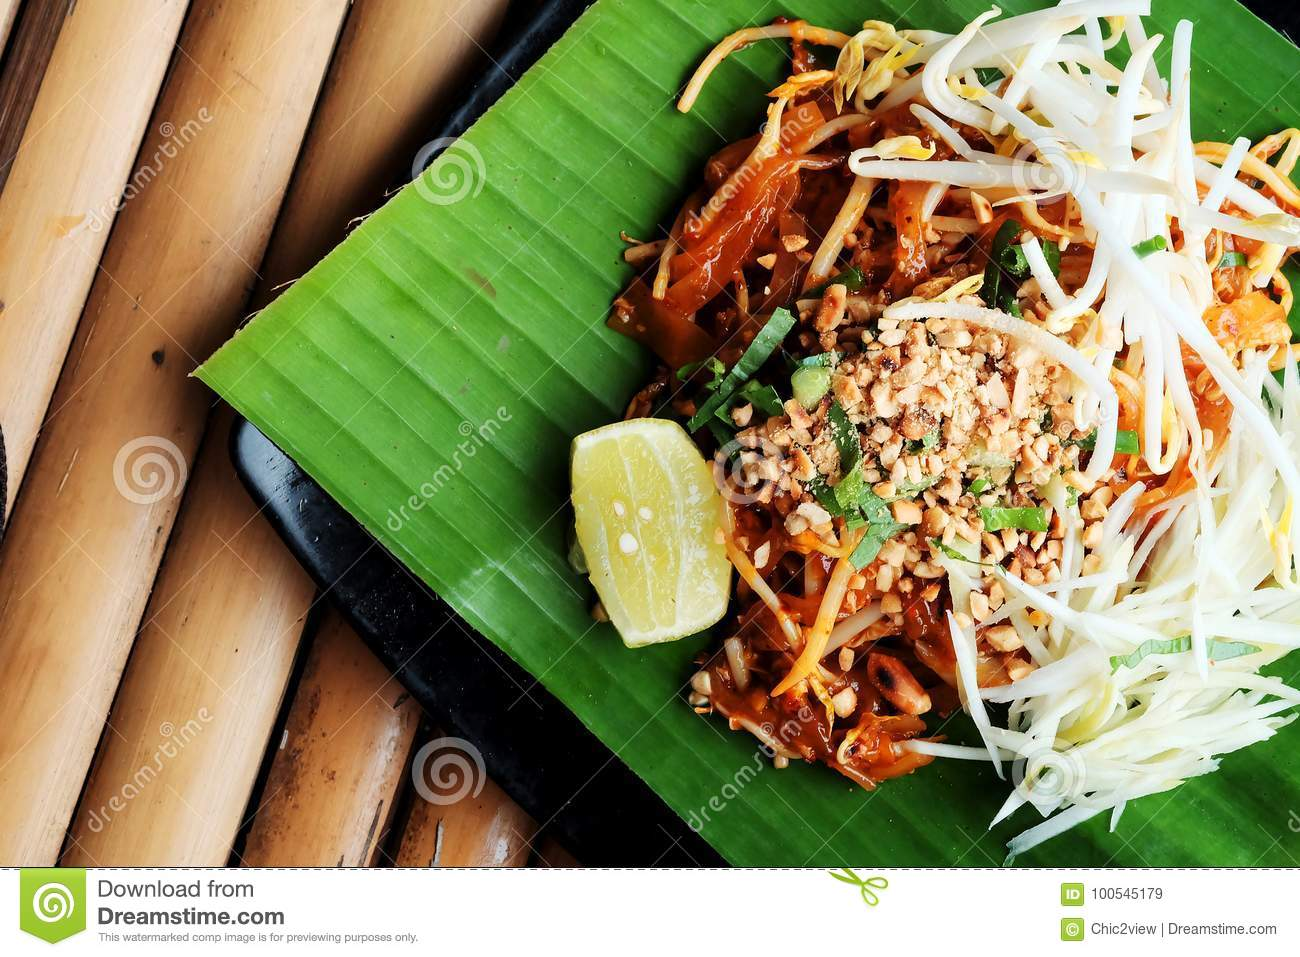 Phat thaior Pad thai is a famous Thailand tradition cuisine with fried noodle served on banana leaf